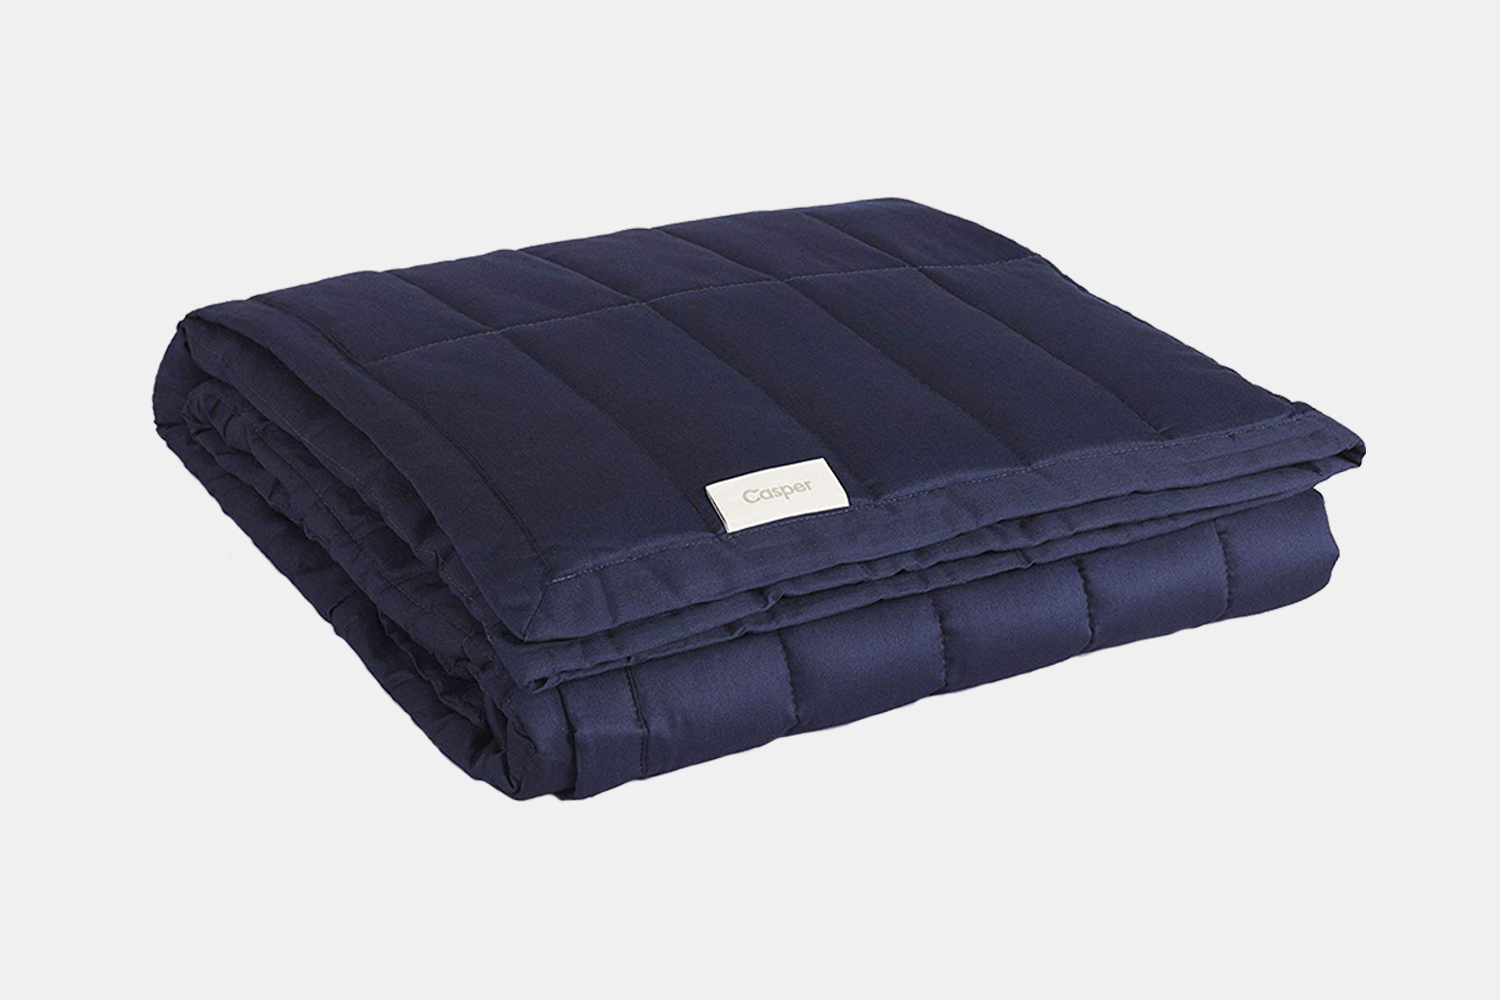 Casper Weighted Blankets